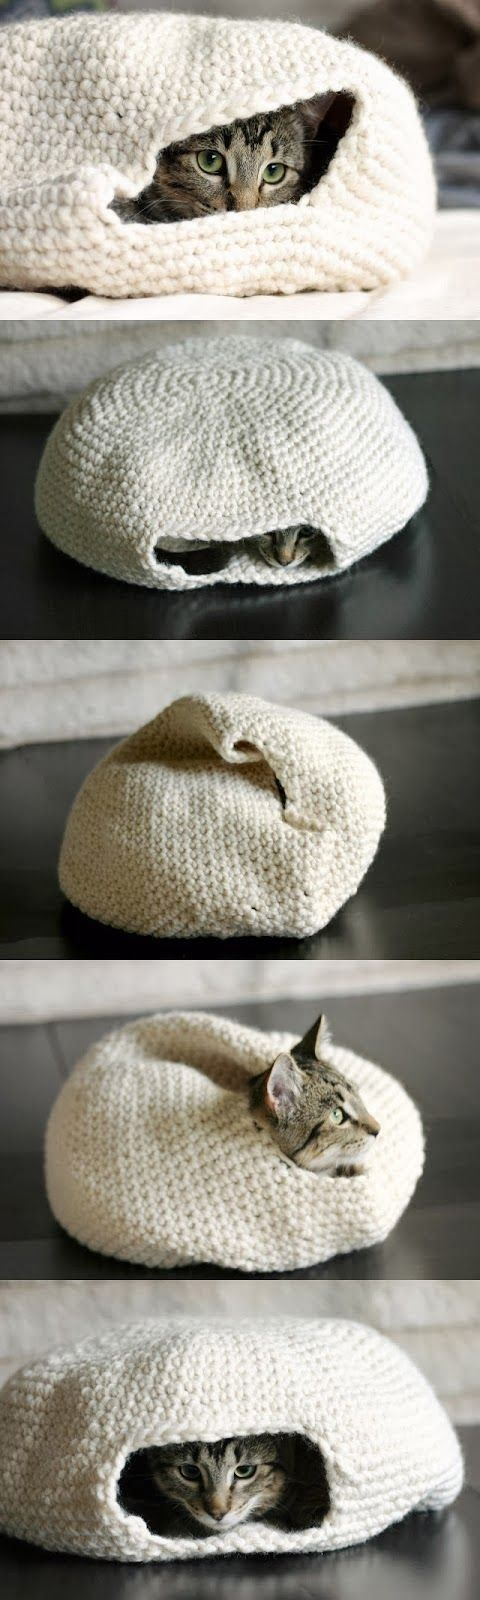 How to Make a Handmade Crochet Cat Bed. Very Cheap and Easy to Make!! ~ Tenacity Solution